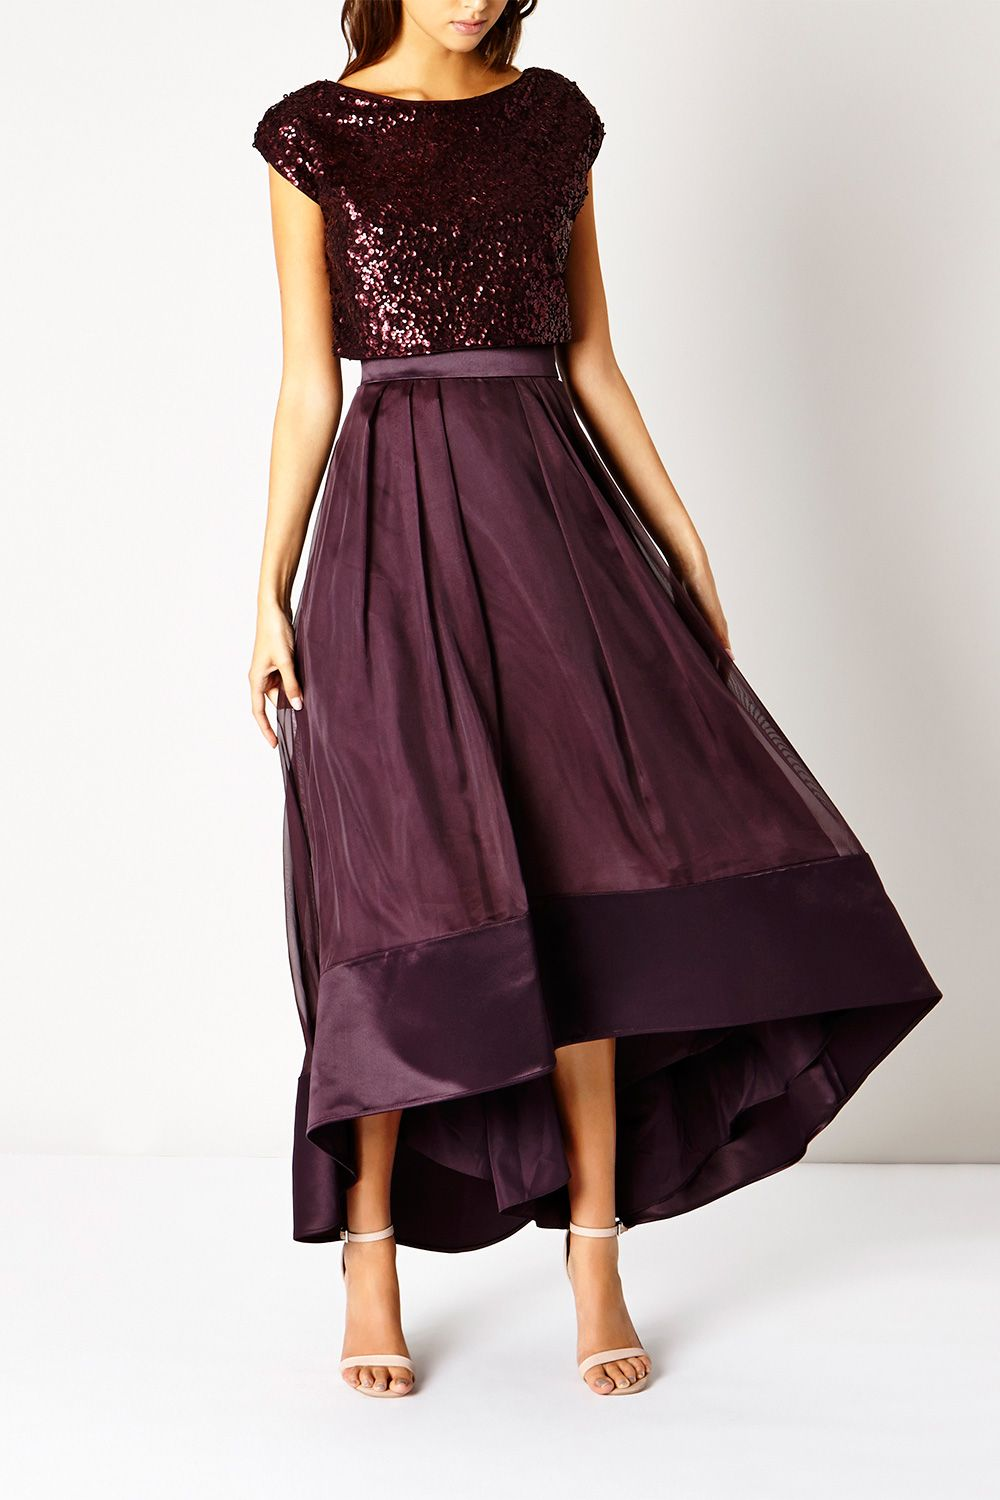 TISA TOP   Tulle Skirts   Pinterest   Tulle skirts, Prom and Winter ...